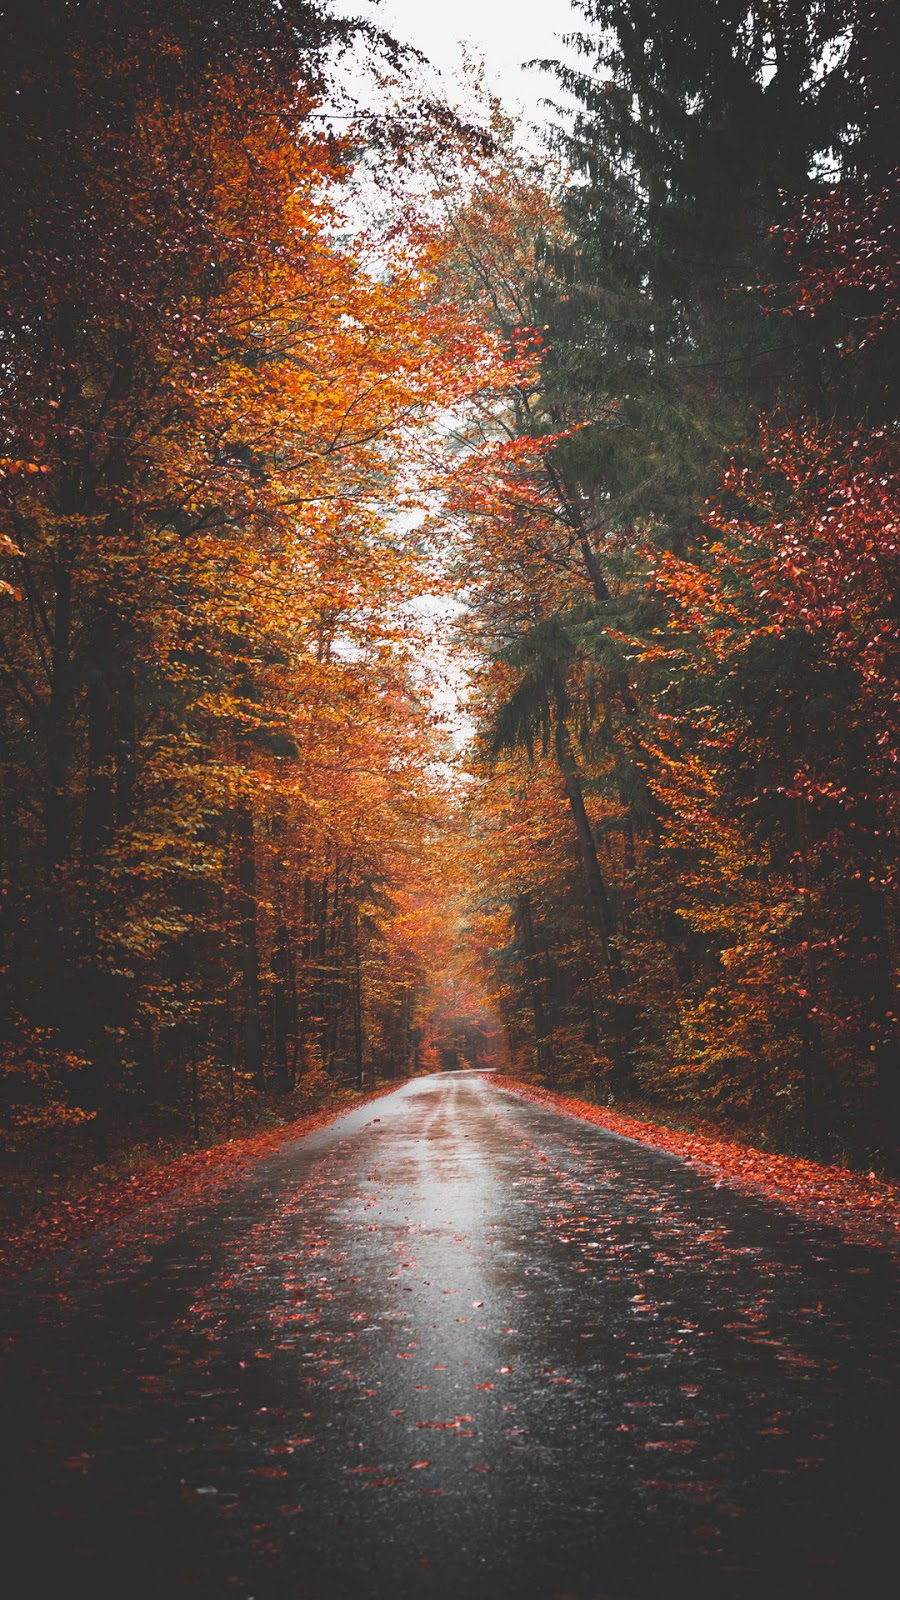 The Most Beautiful Autumn Wallpapers on the Internet